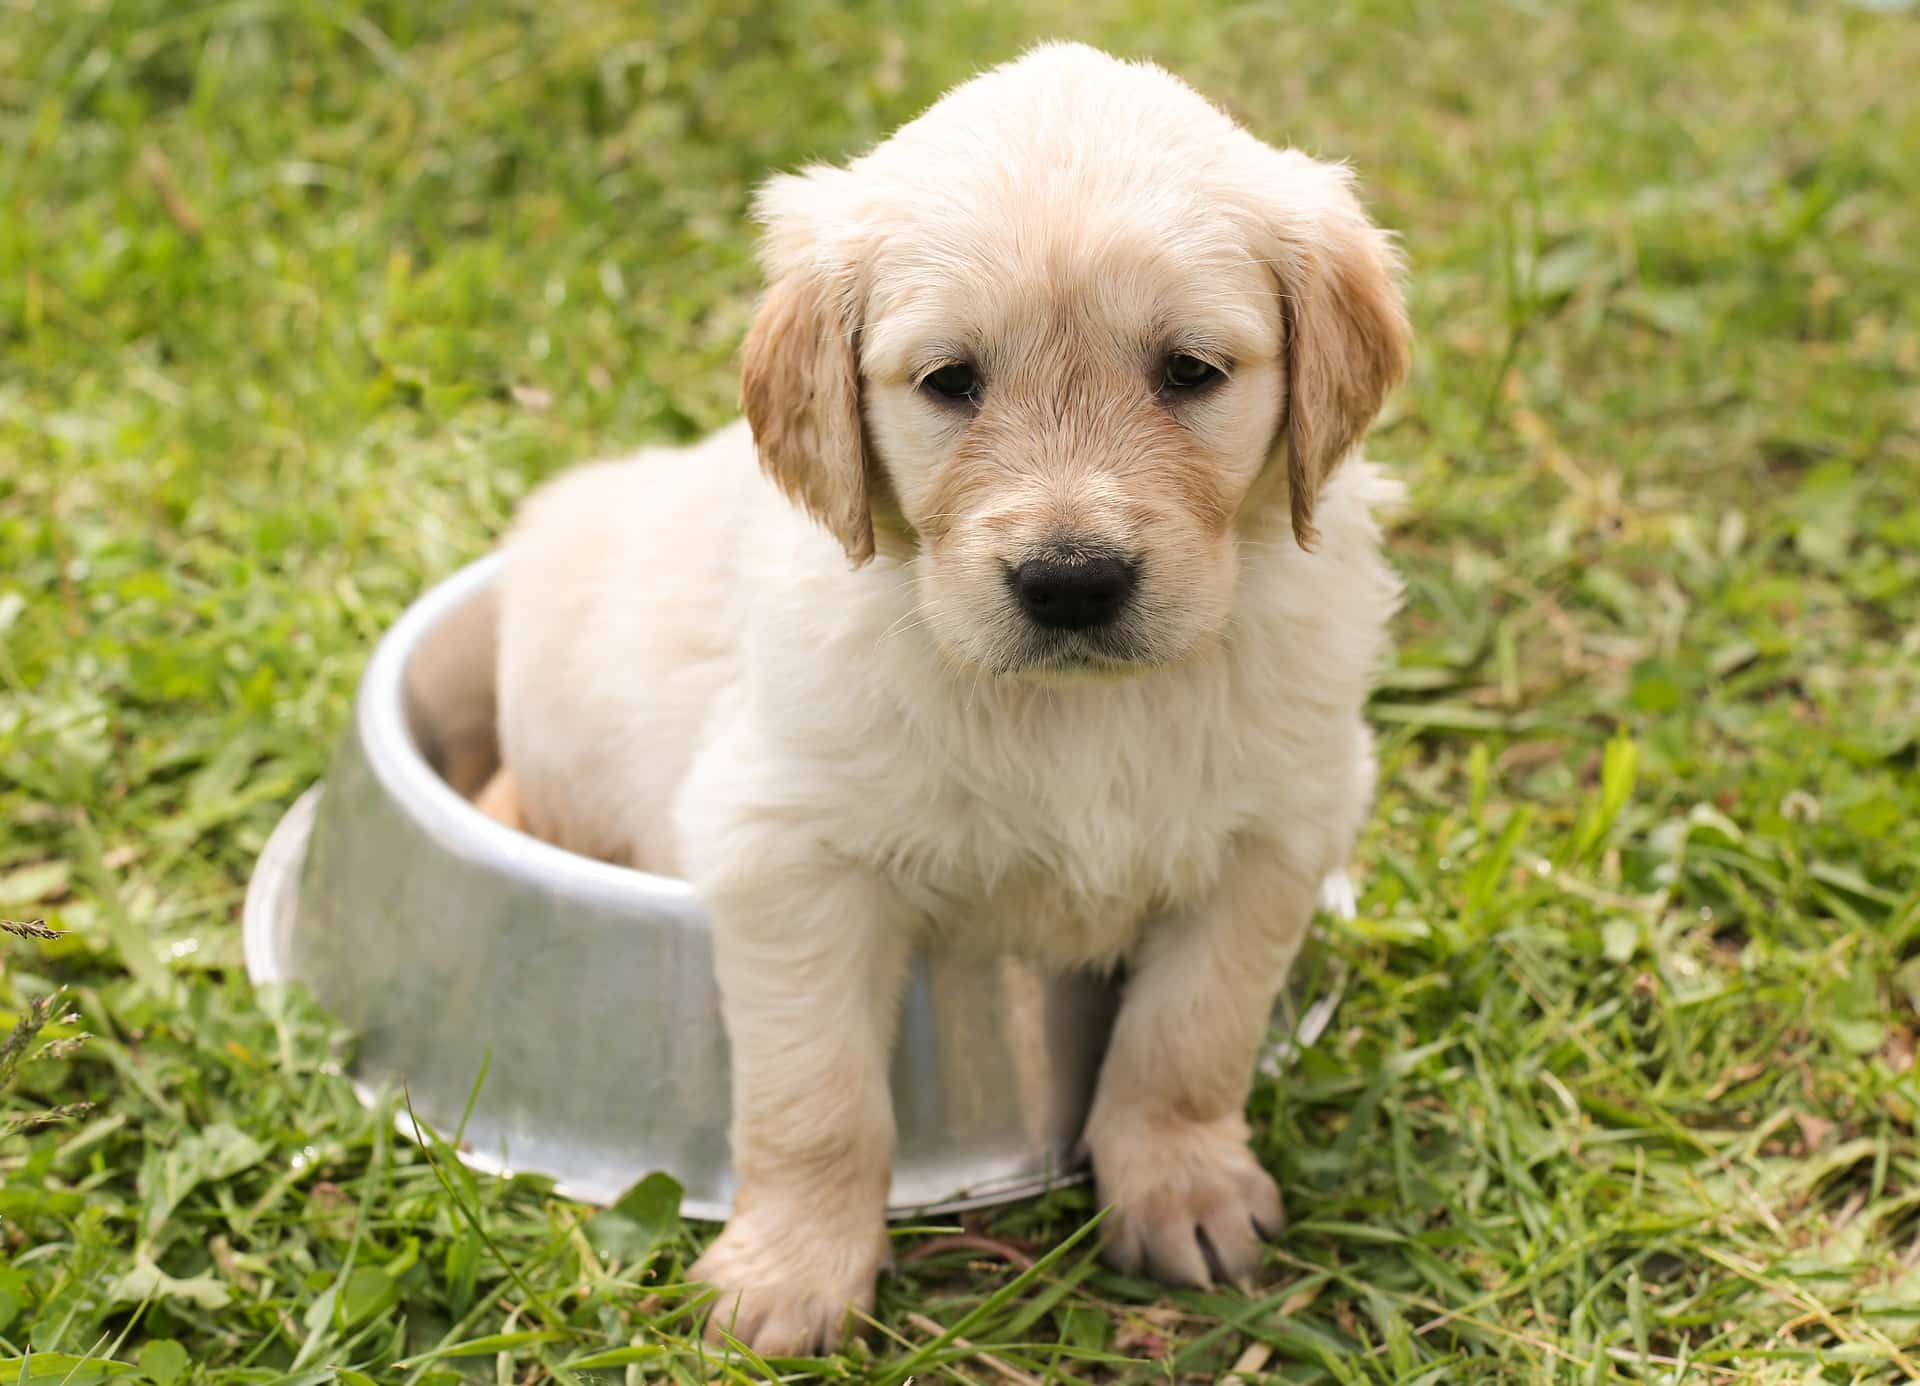 Puppy sitting in food bowl